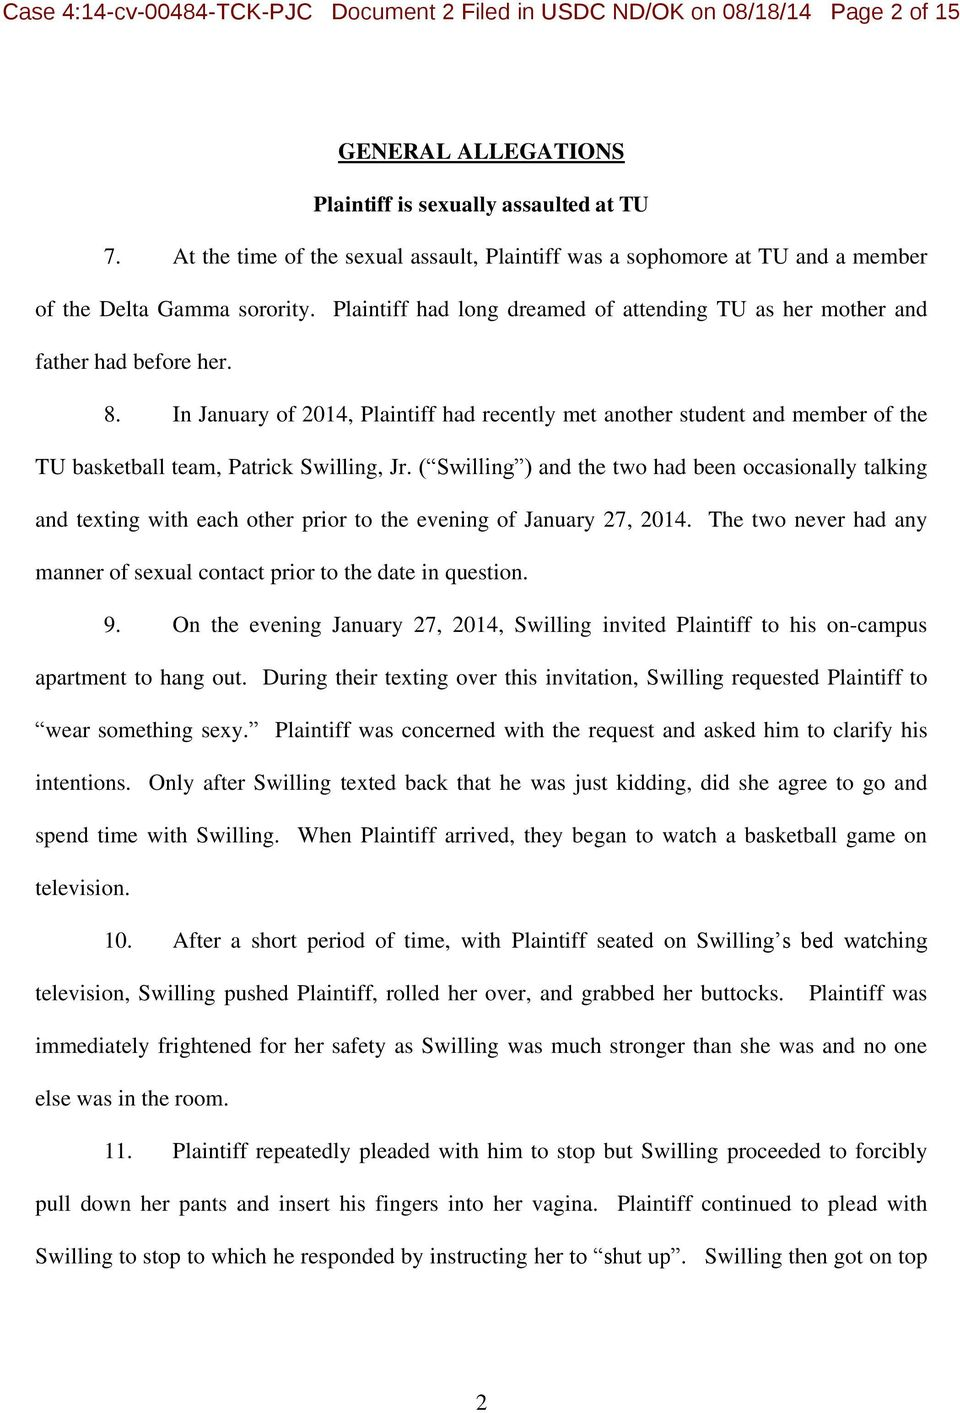 In January of 2014, Plaintiff had recently met another student and member of the TU basketball team, Patrick Swilling, Jr.